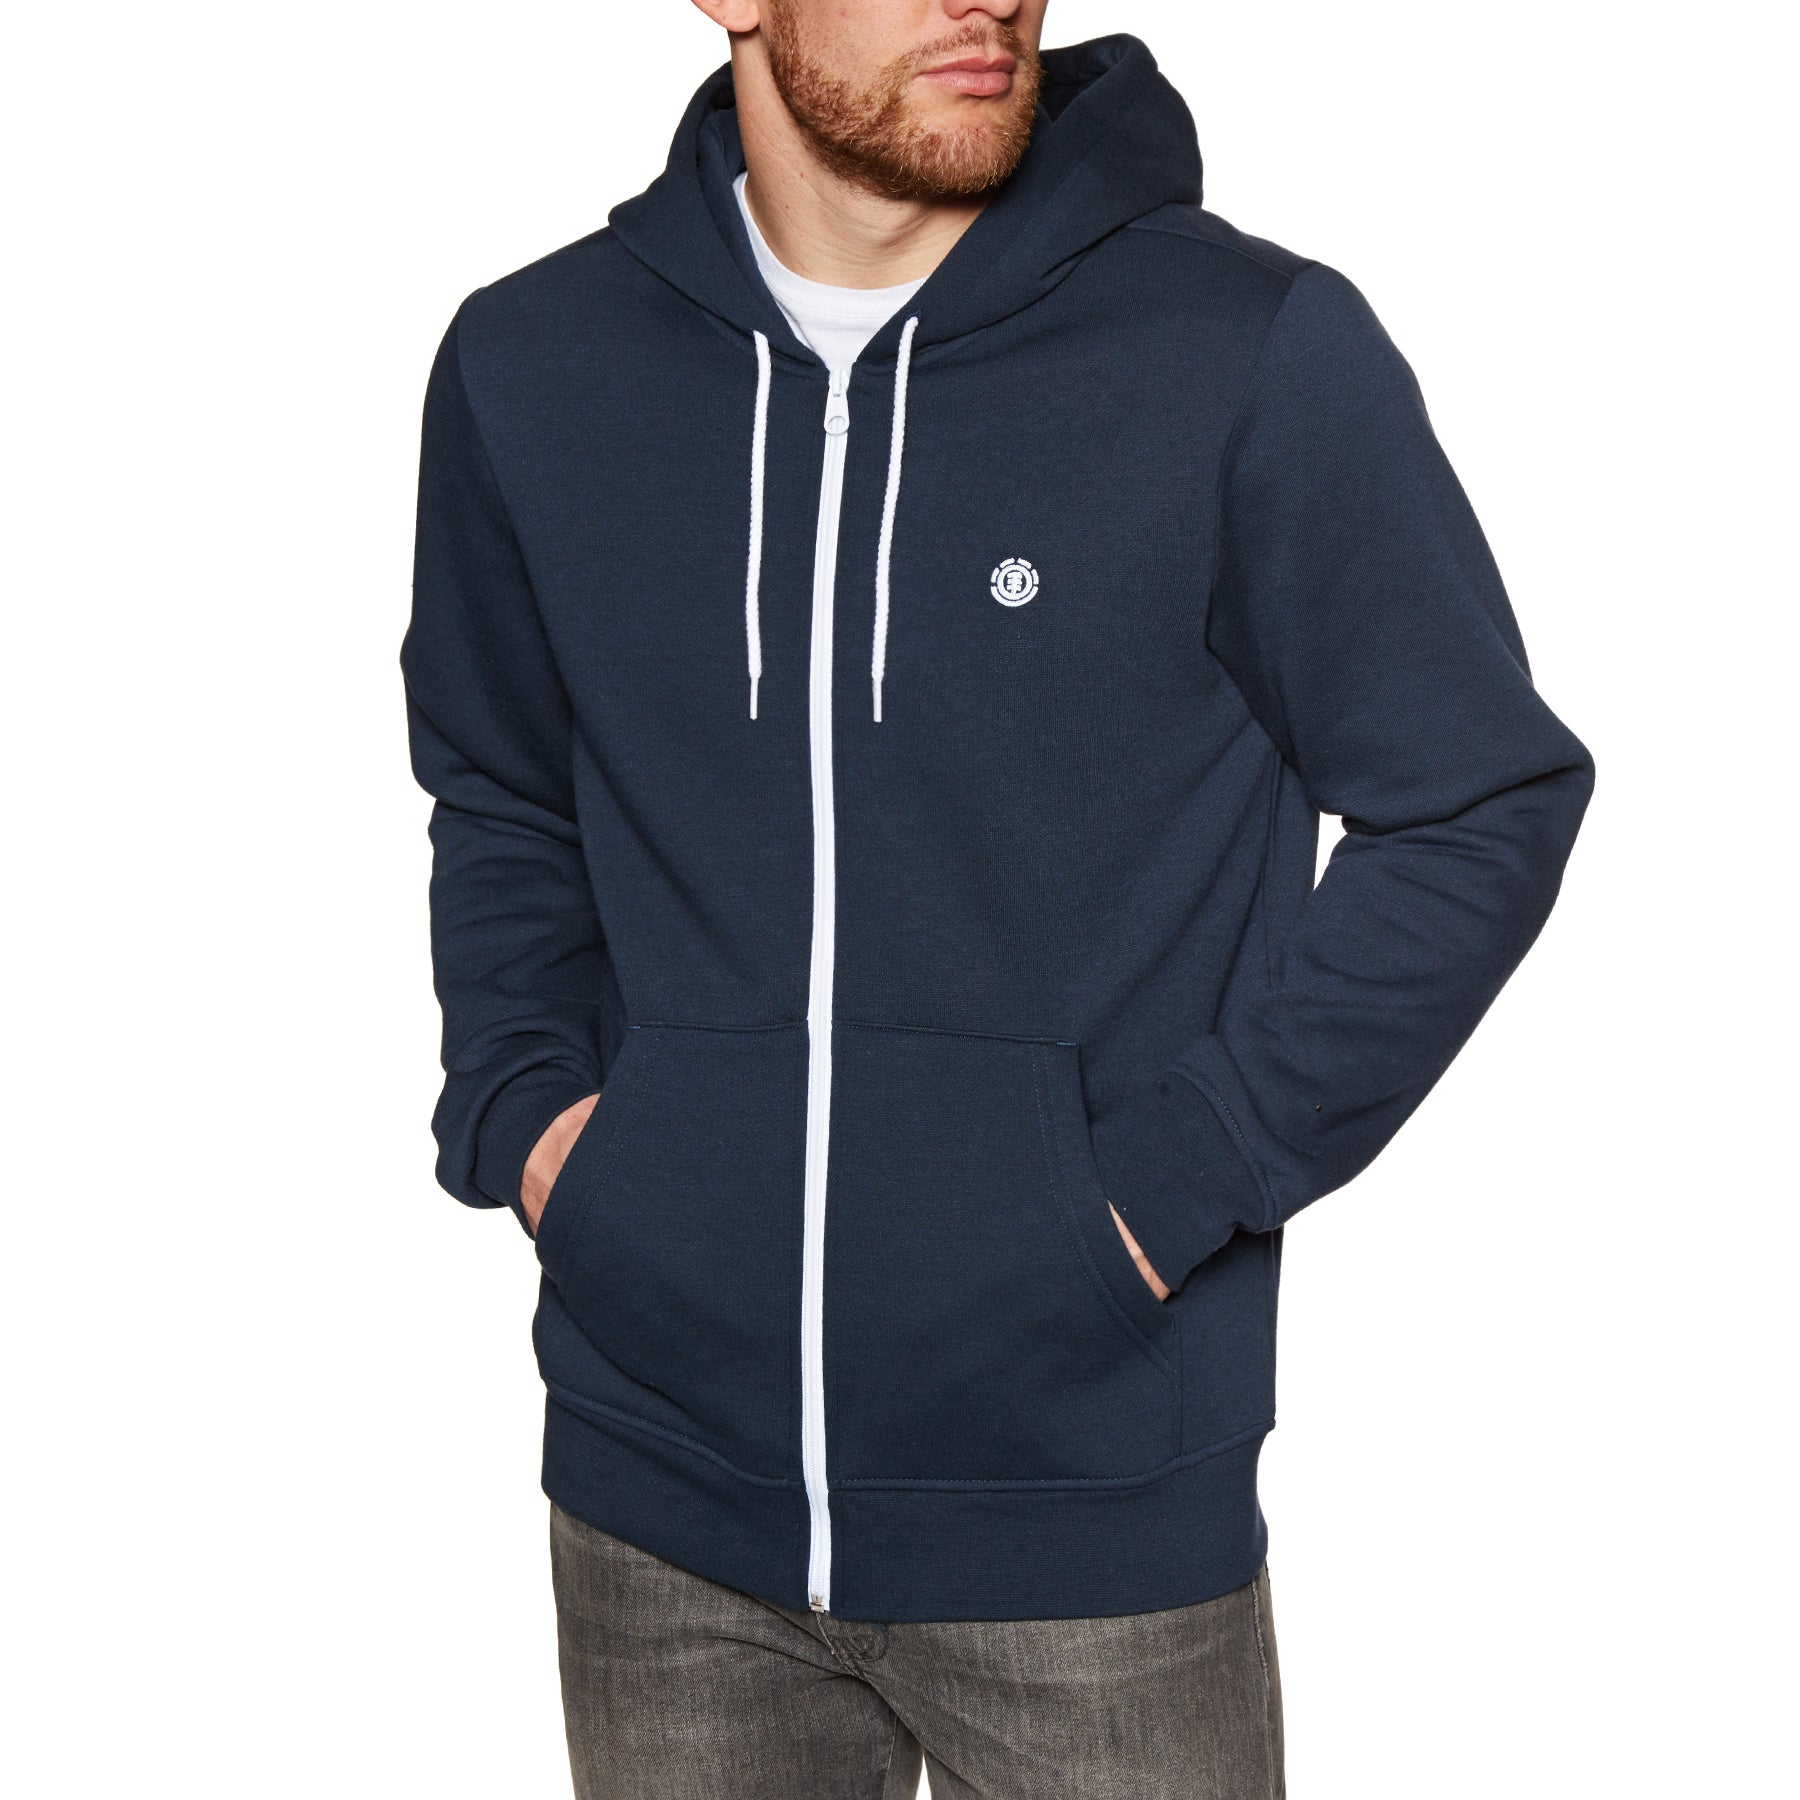 Element Cornell Classic Zip Hoody - Eclipse Navy